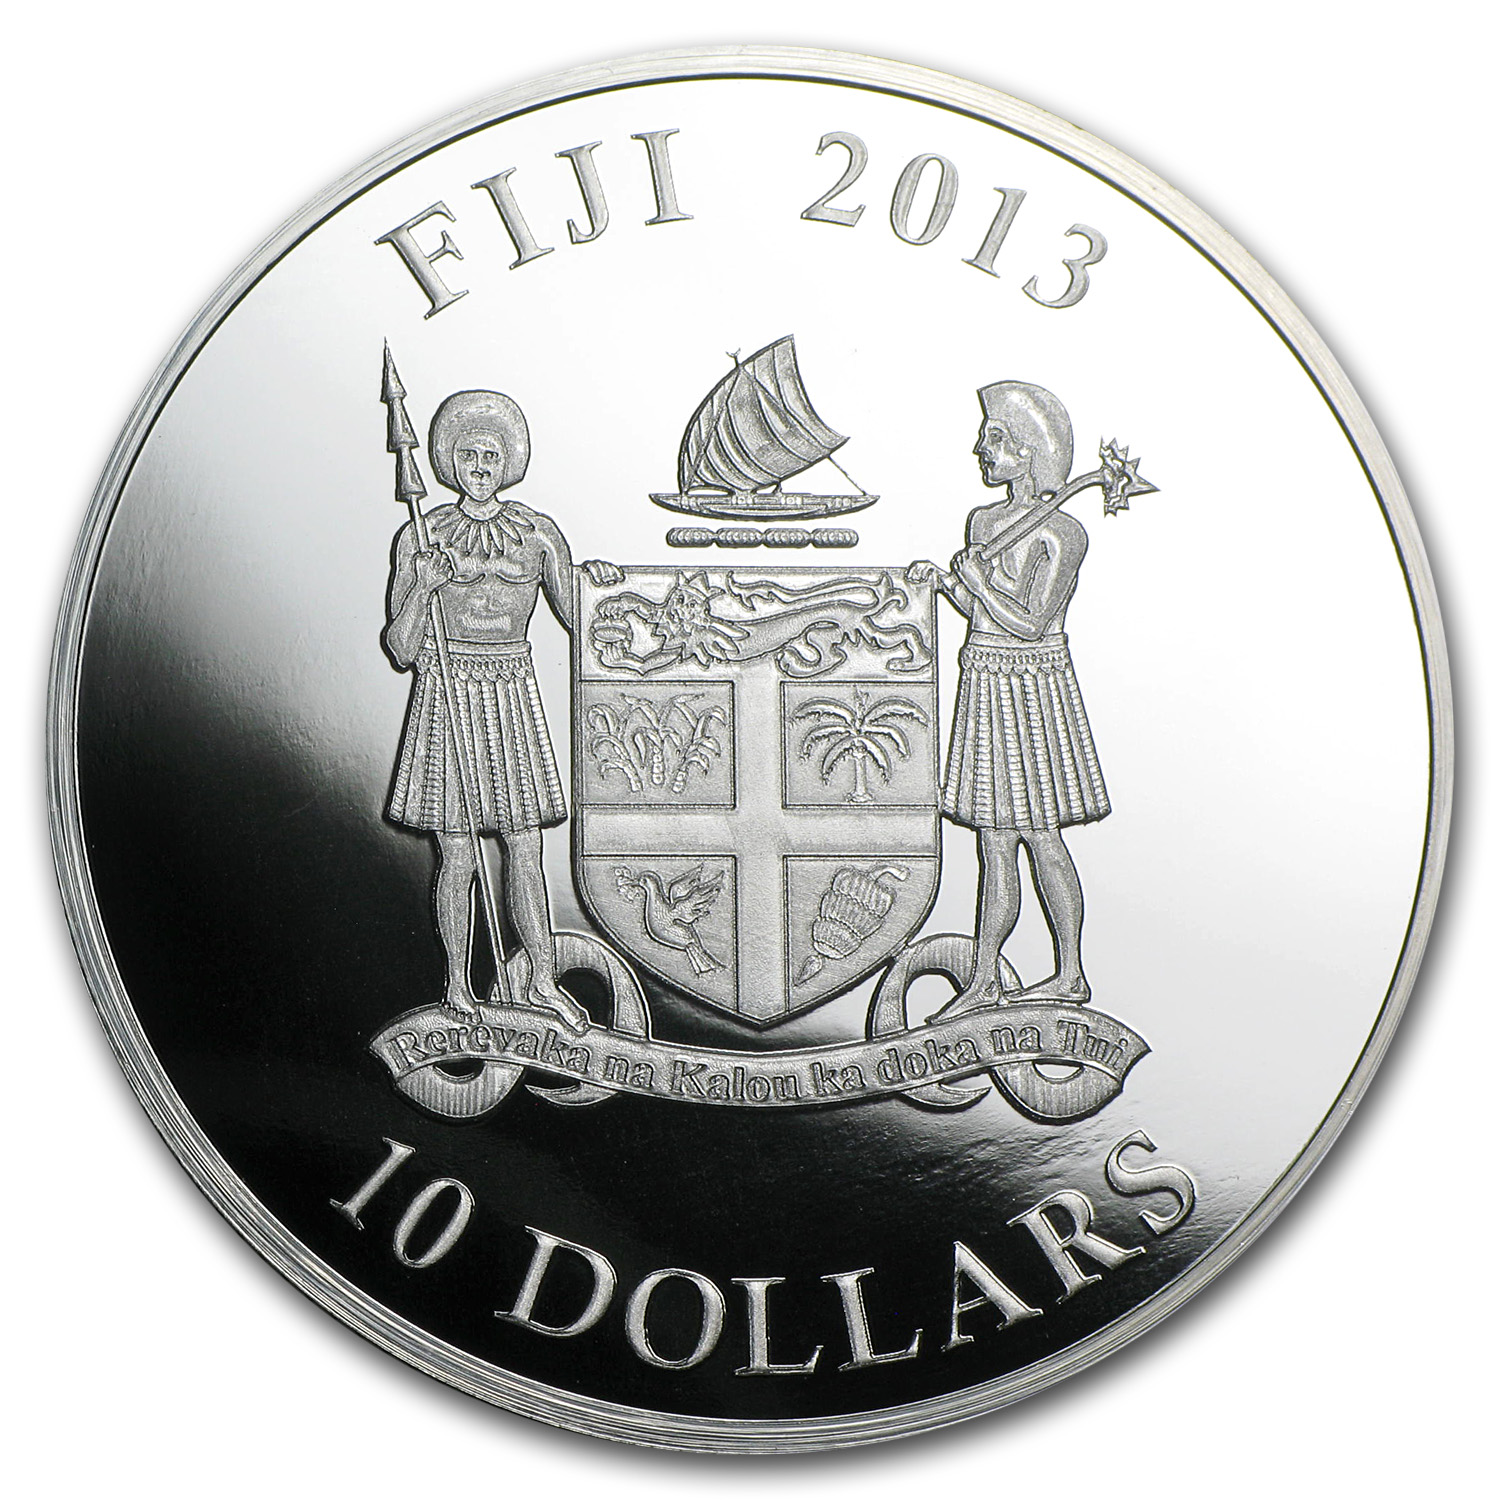 2013 Fiji Silver $10 Year of the Snake Gilson Opal Snake